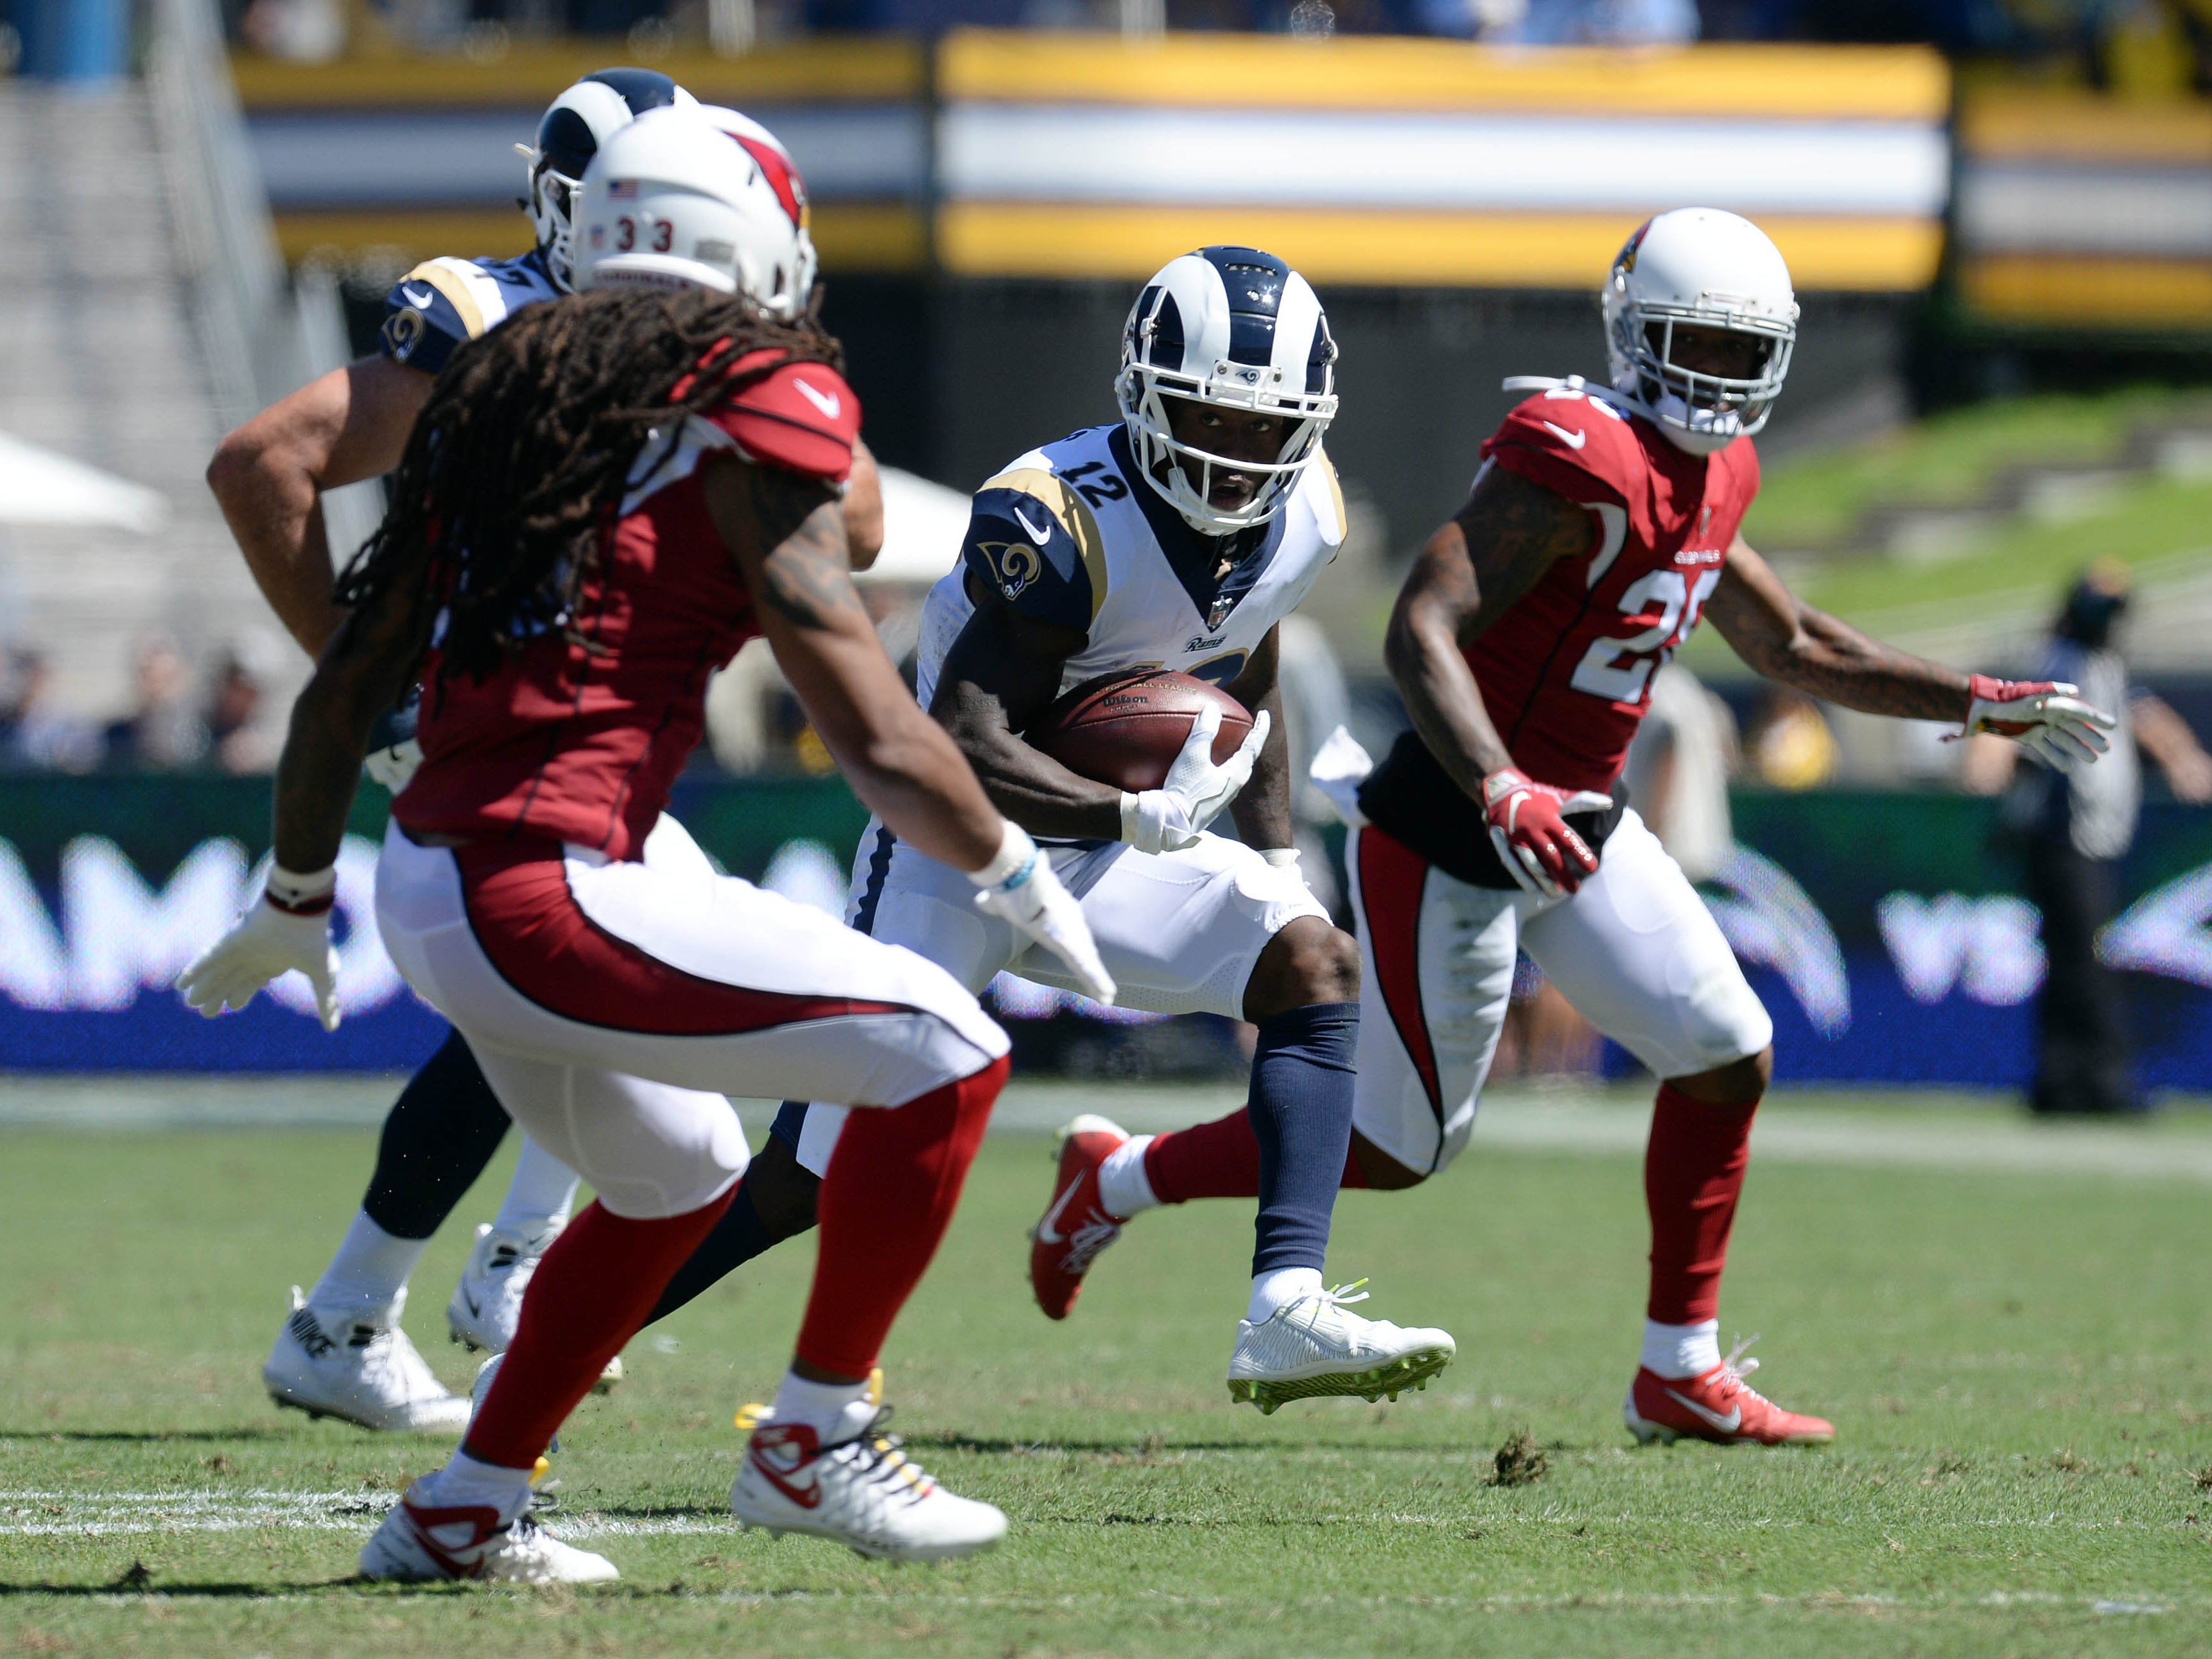 September 16, 2018; Los Angeles, CA, USA; Los Angeles Rams wide receiver Brandin Cooks (12) runs the ball against the Arizona Cardinals during the first half at the Los Angeles Memorial Coliseum. Mandatory Credit: Gary A. Vasquez-USA TODAY Sports